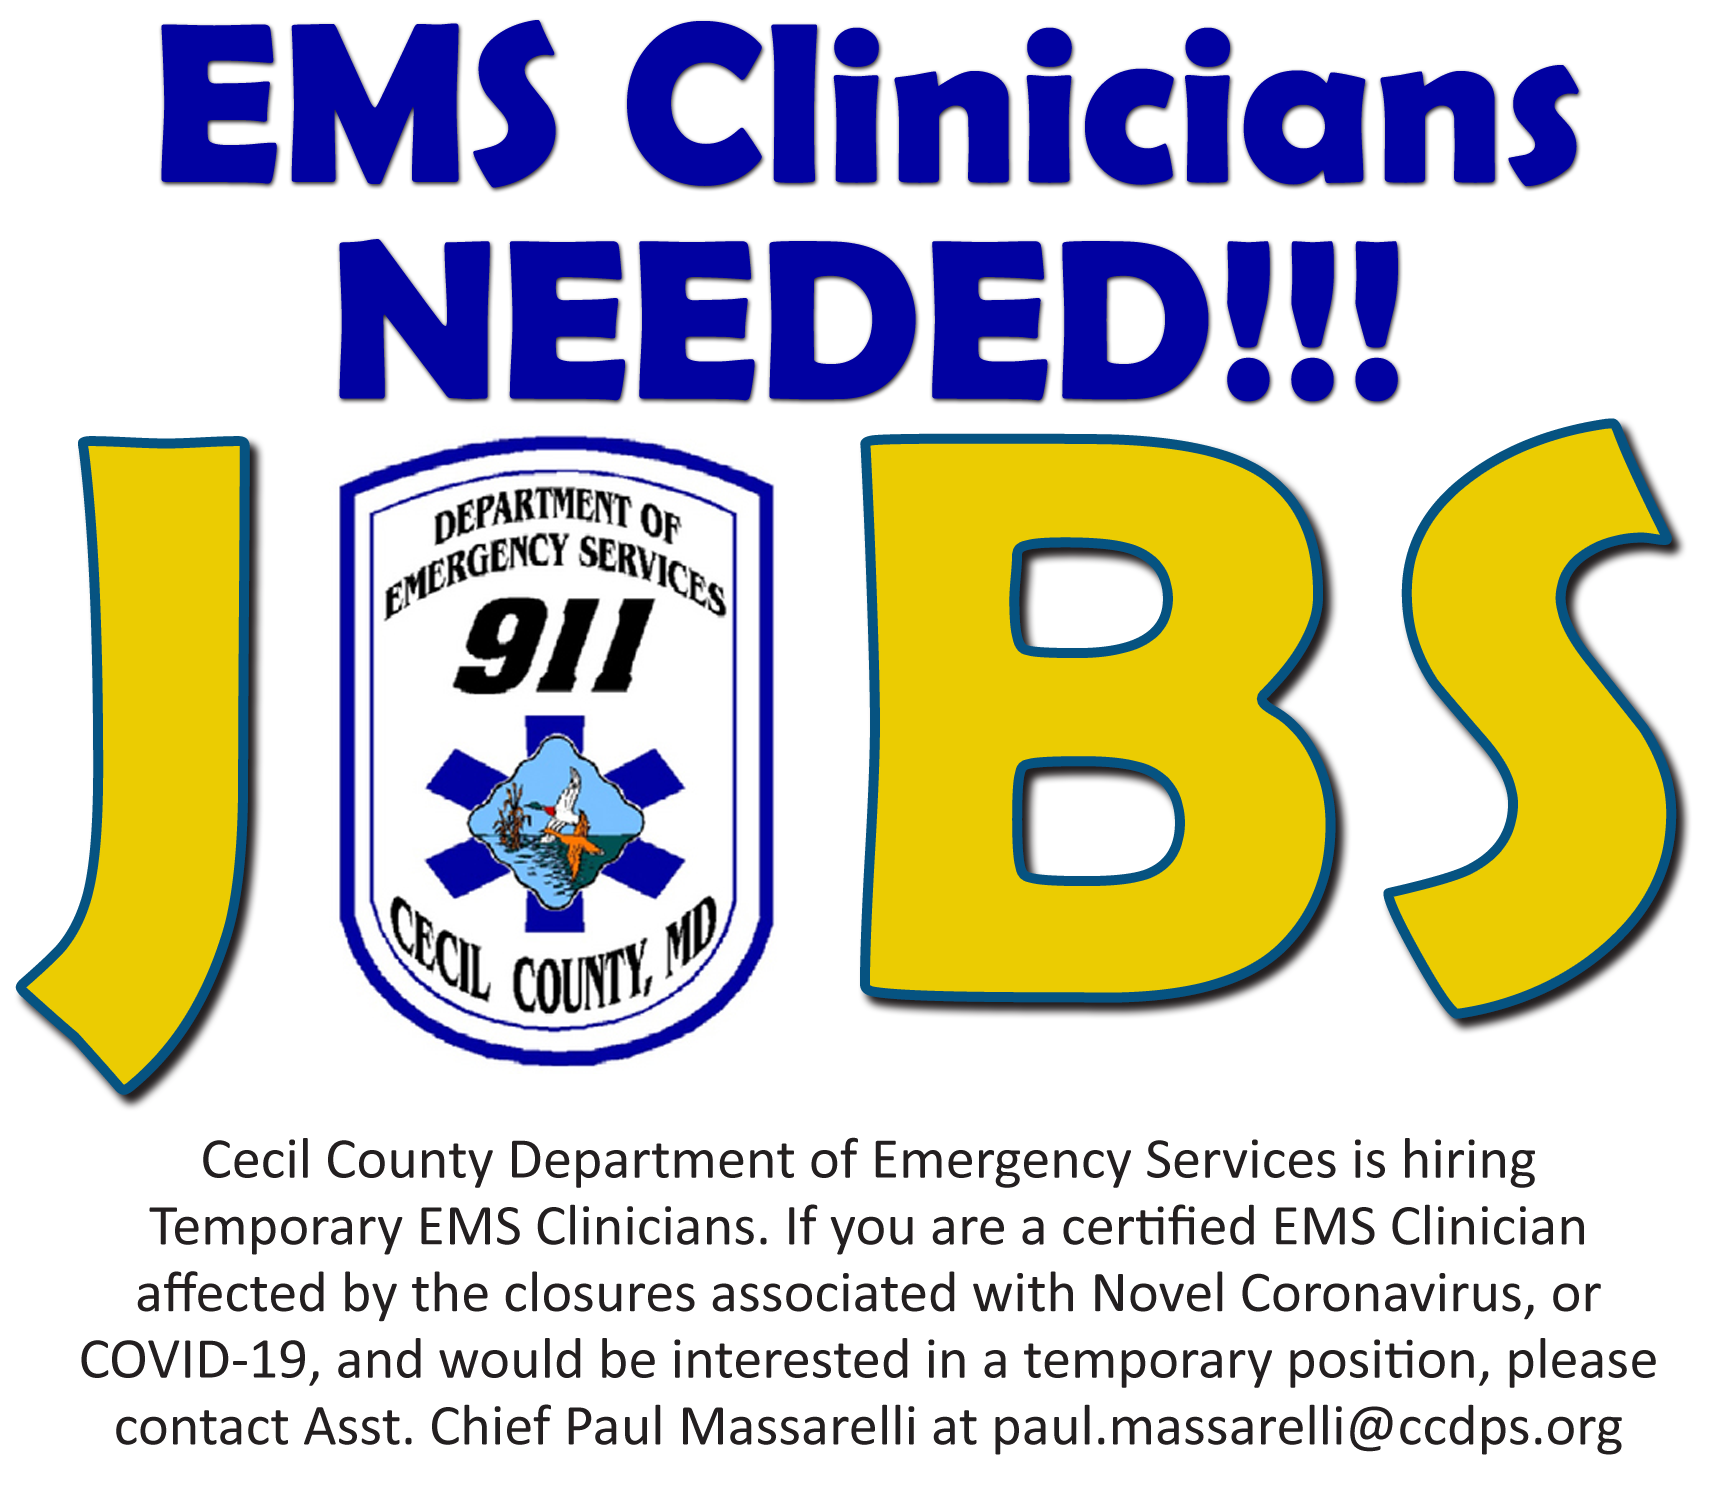 ems clinicians needed